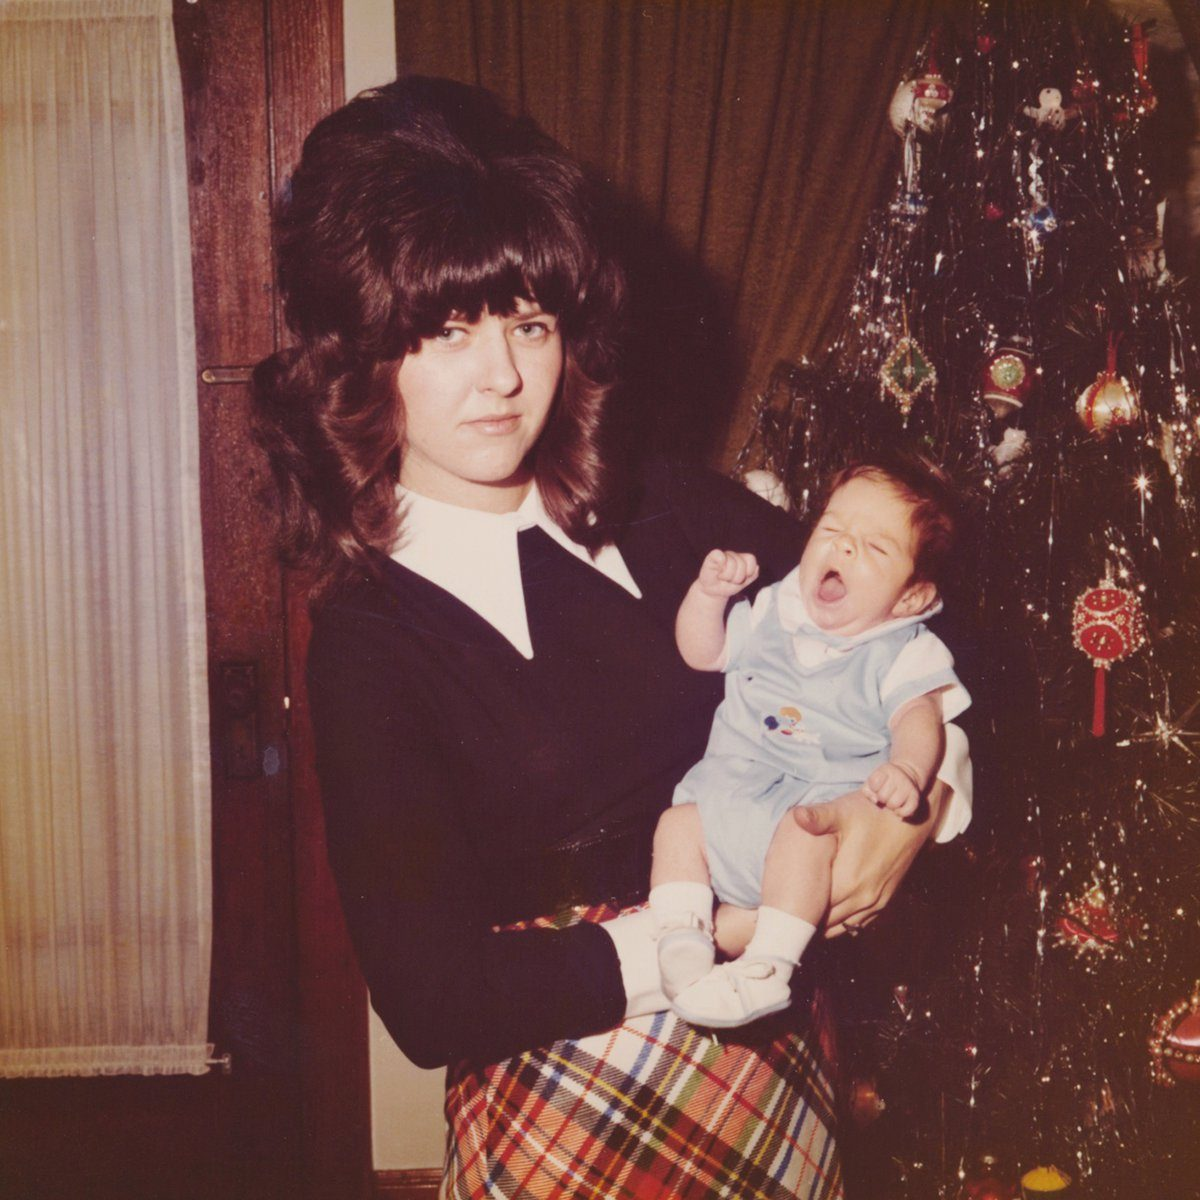 Woman holding a baby in front of a Christmas tree